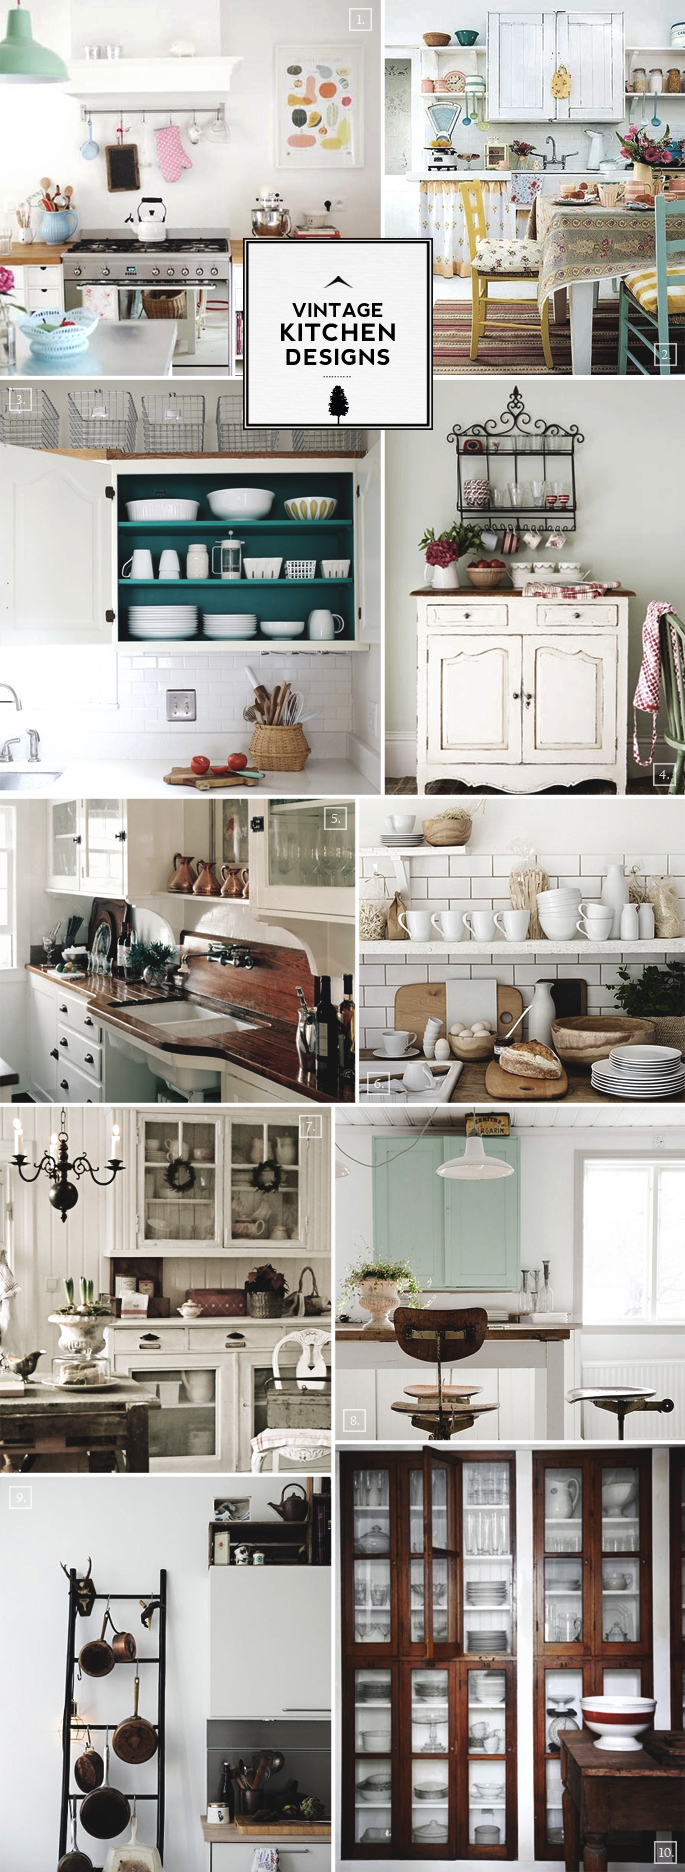 Vintage Kitchen Ideas: Vintage Kitchen Design, Accessories, And Decor Ideas